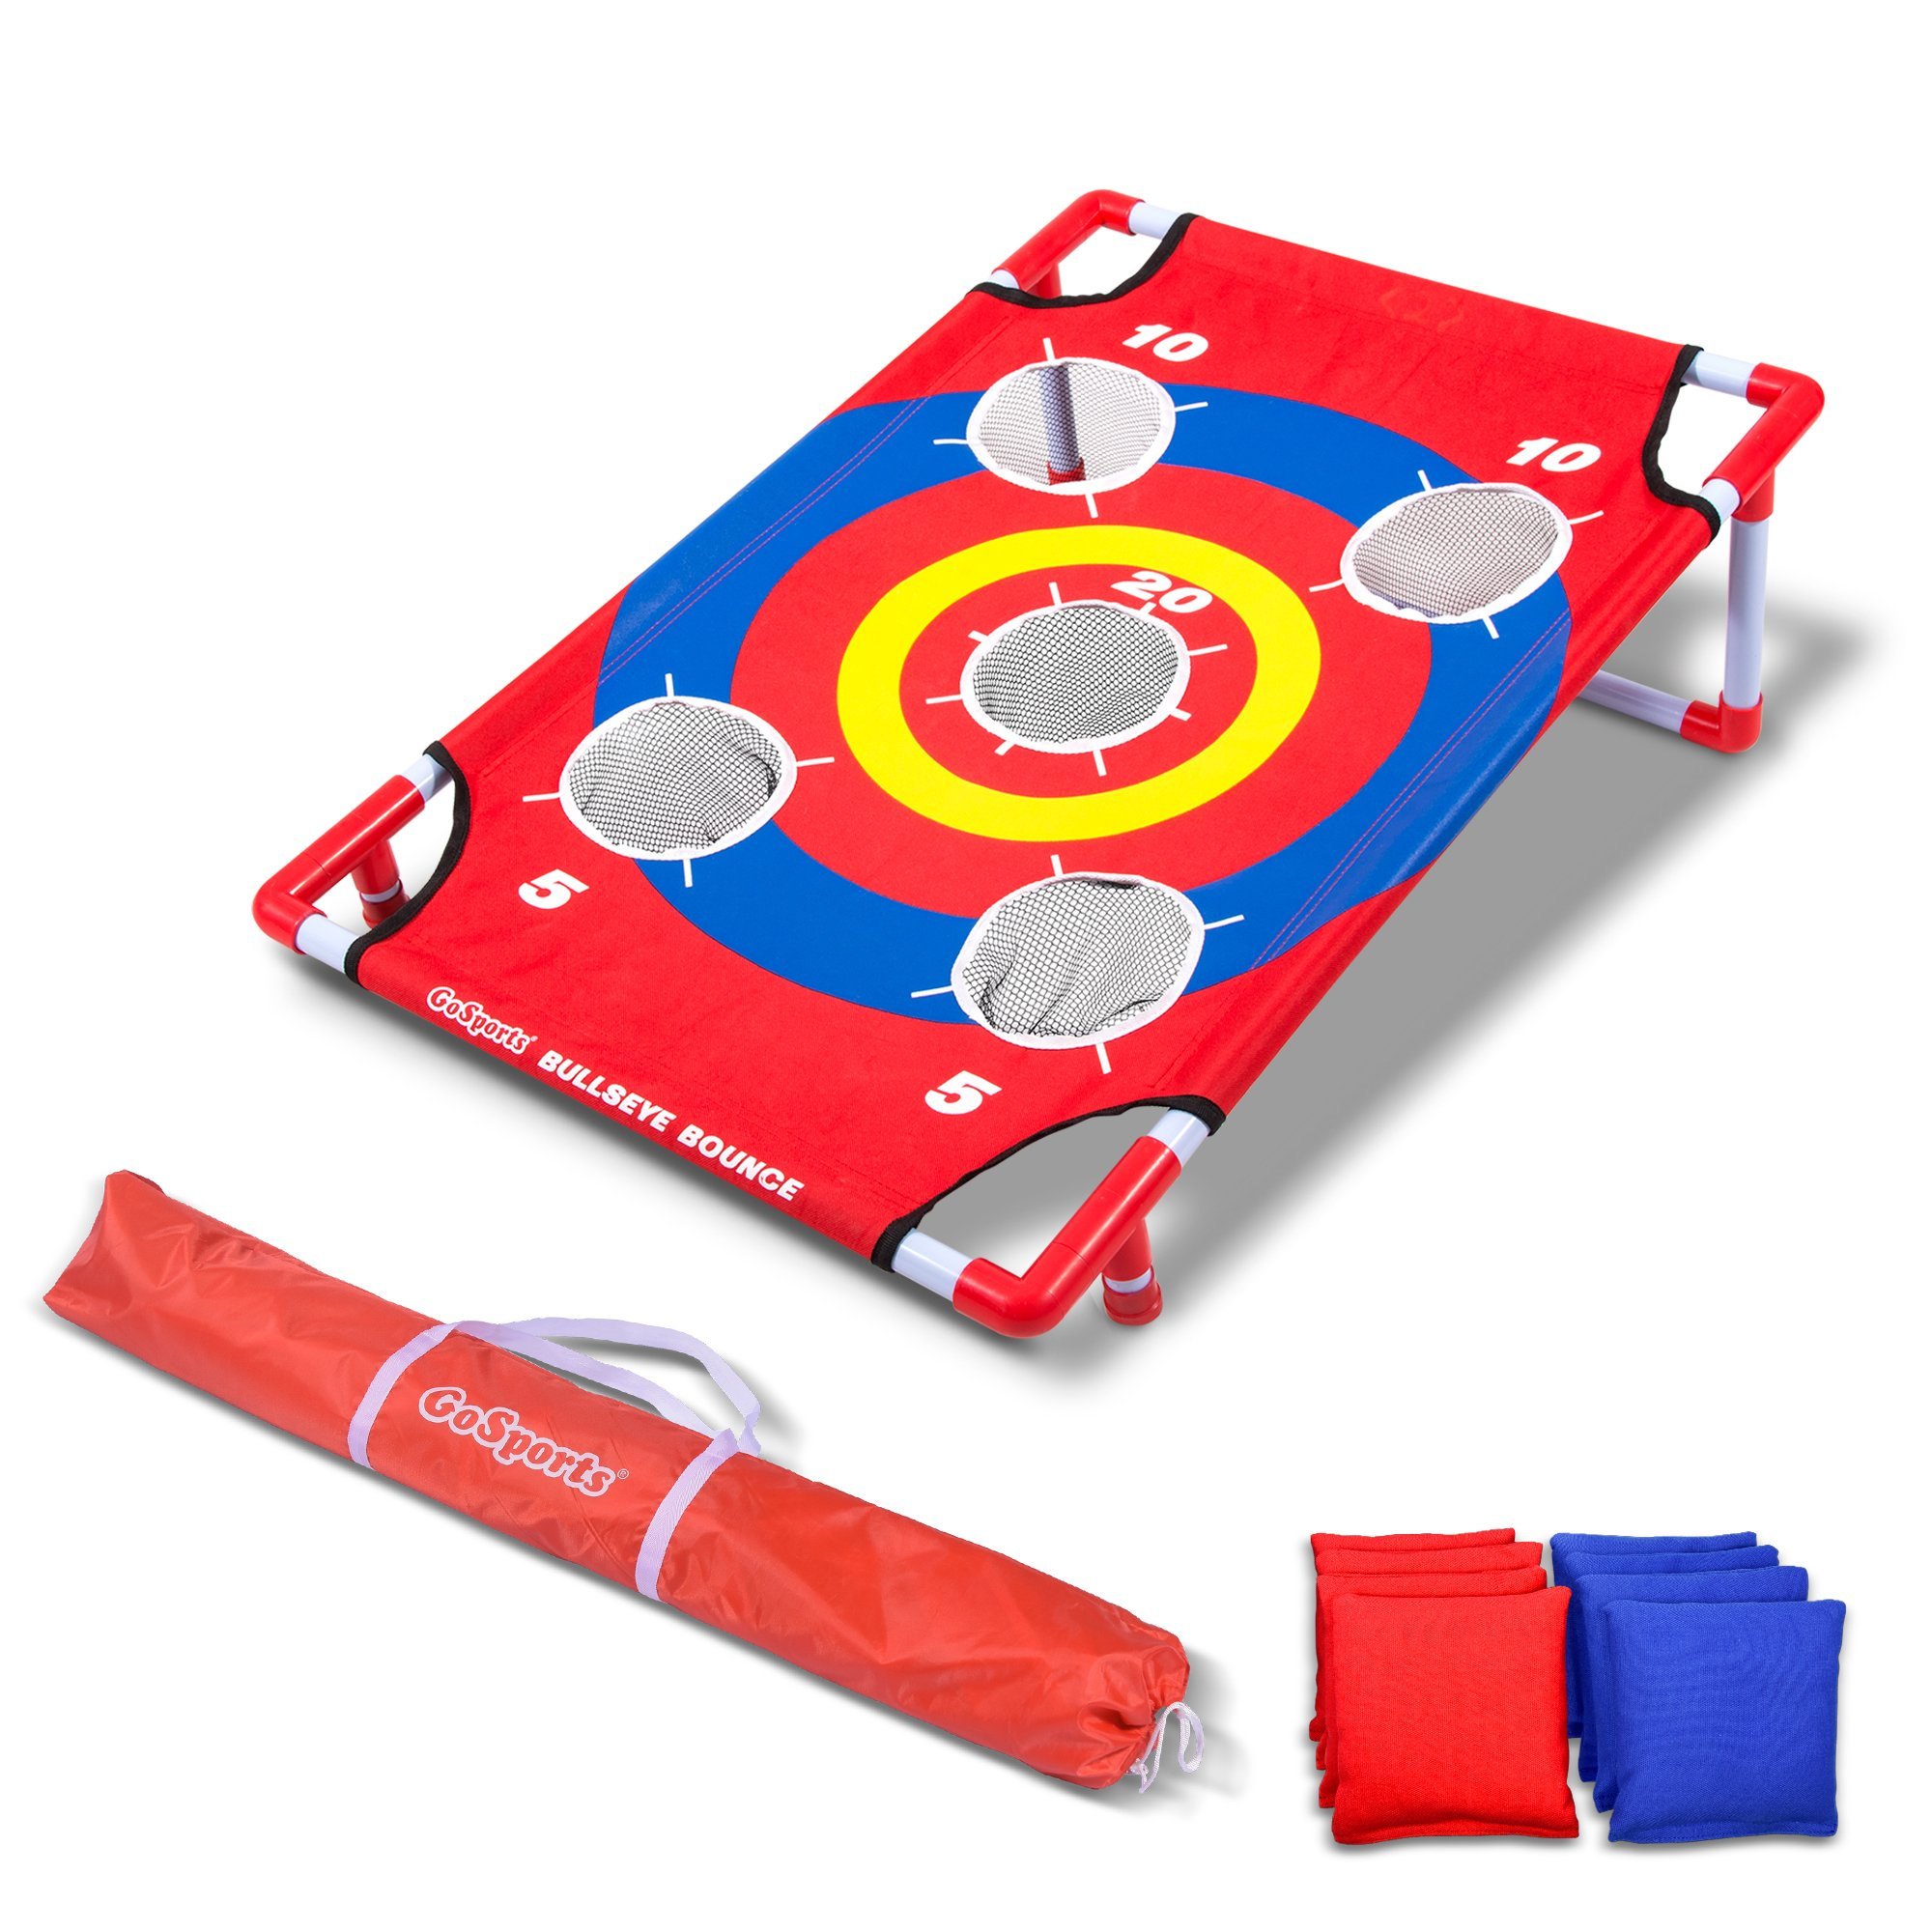 GoSports Bullseye Bounce Cornhole Toss Game - Great for All Ages & Includes Fun Rules by GoSports